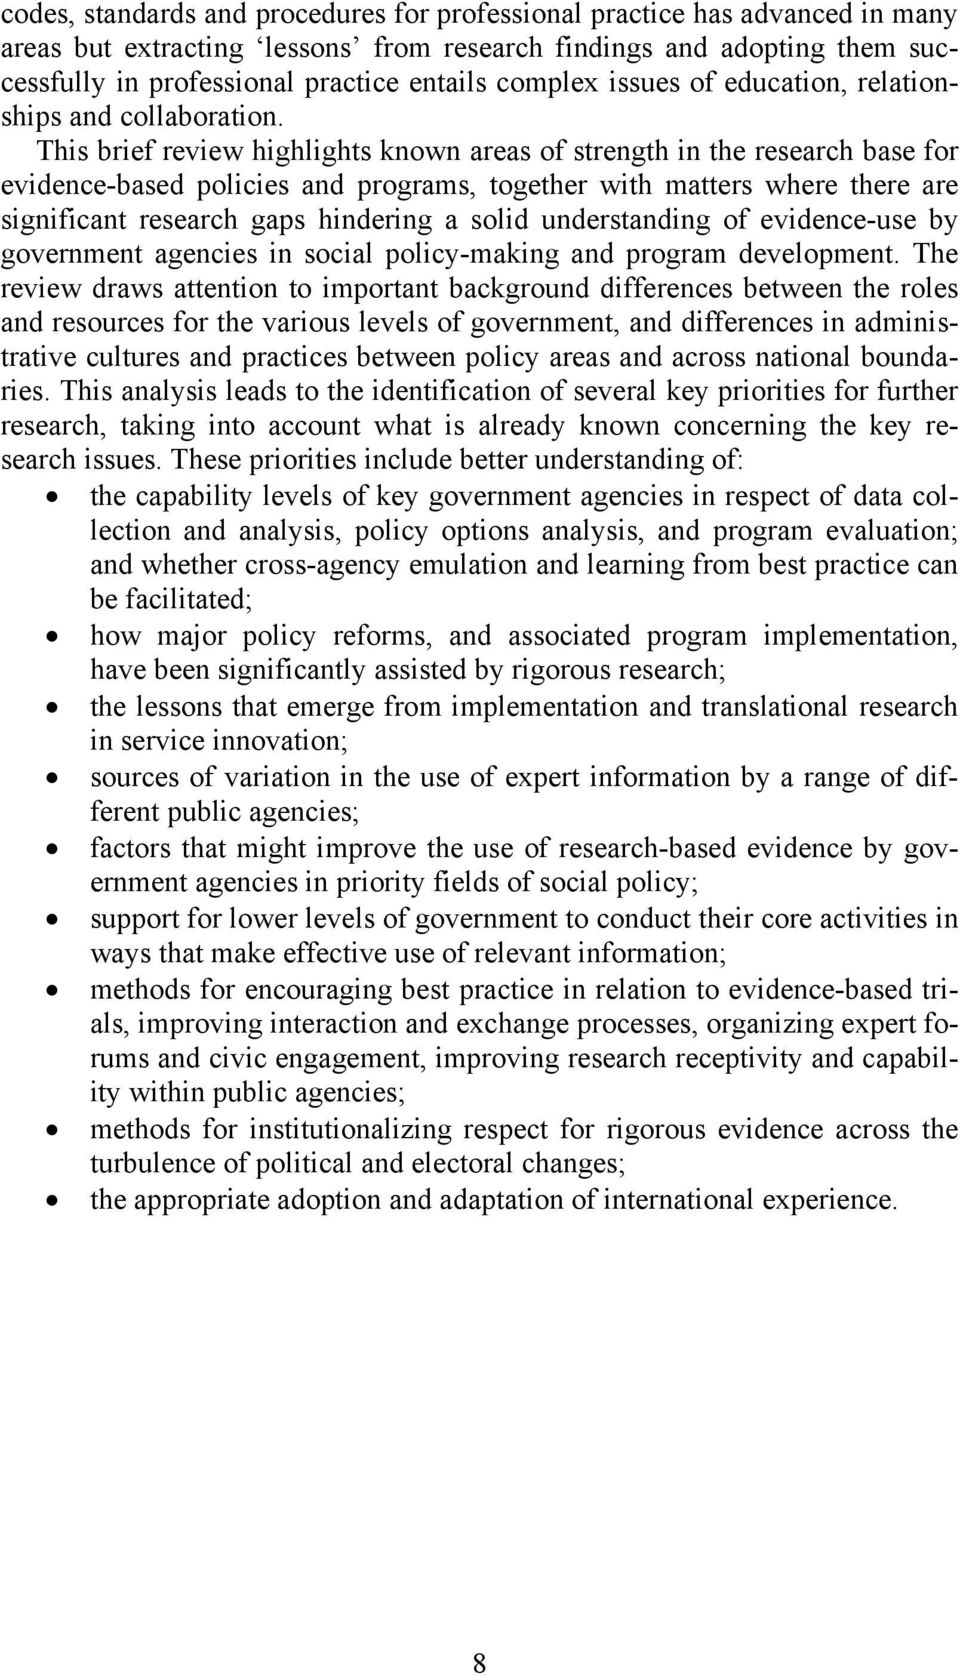 This brief review highlights known areas of strength in the research base for evidence-based policies and programs, together with matters where there are significant research gaps hindering a solid